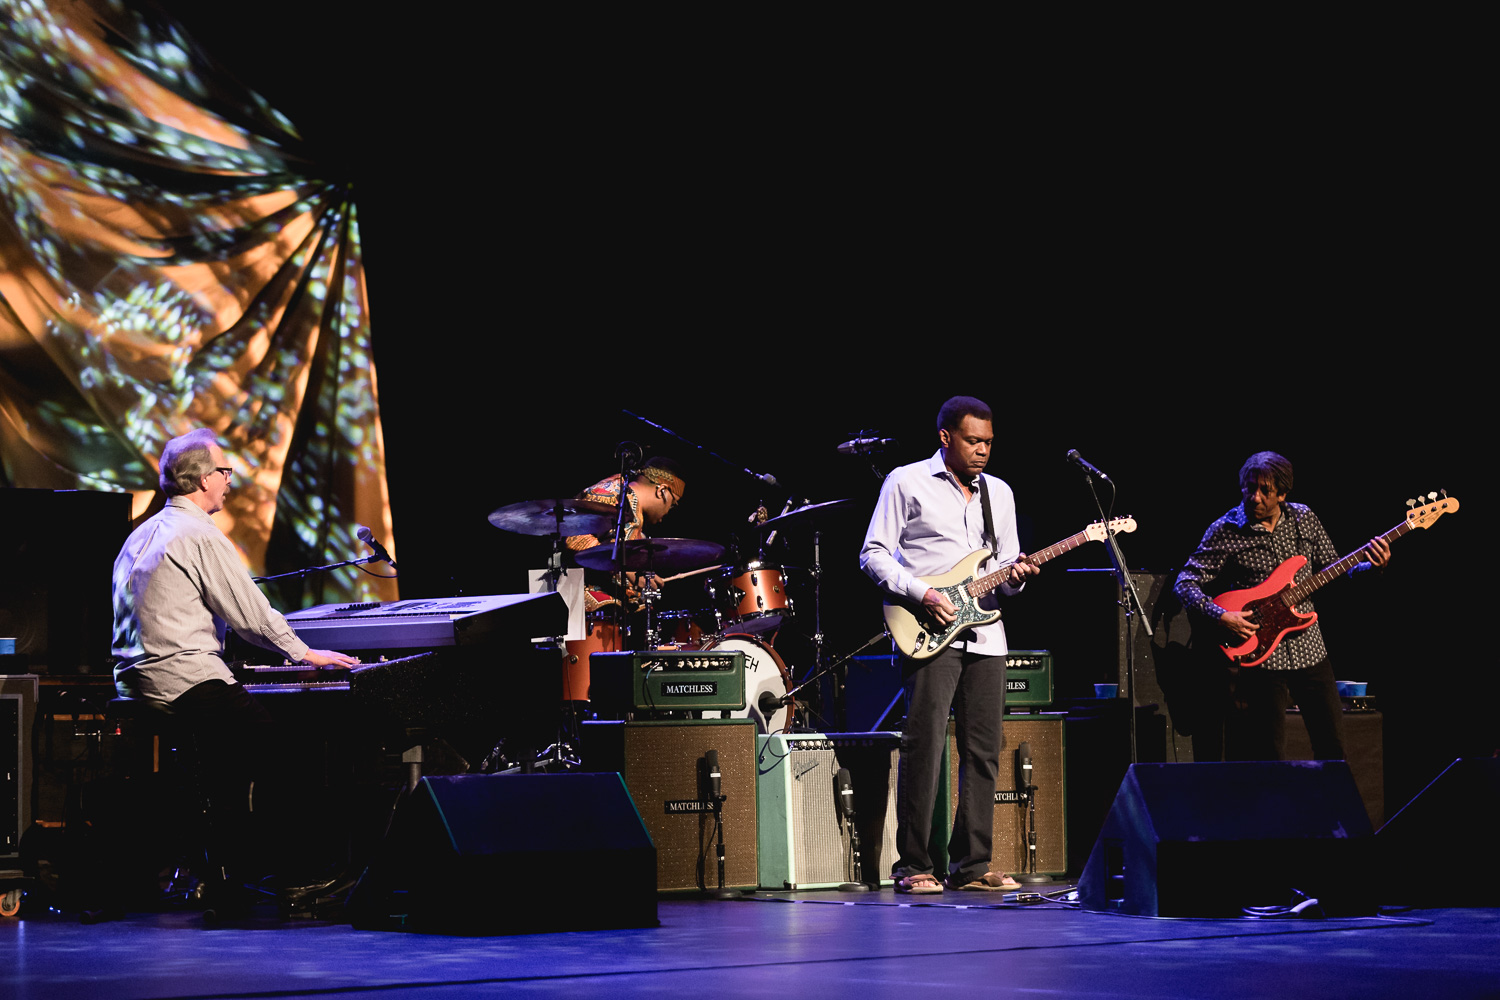 Robert Cray and his band playing onstage at the Eccles Performing Arts Center. Photo: @Lmsorenson.net